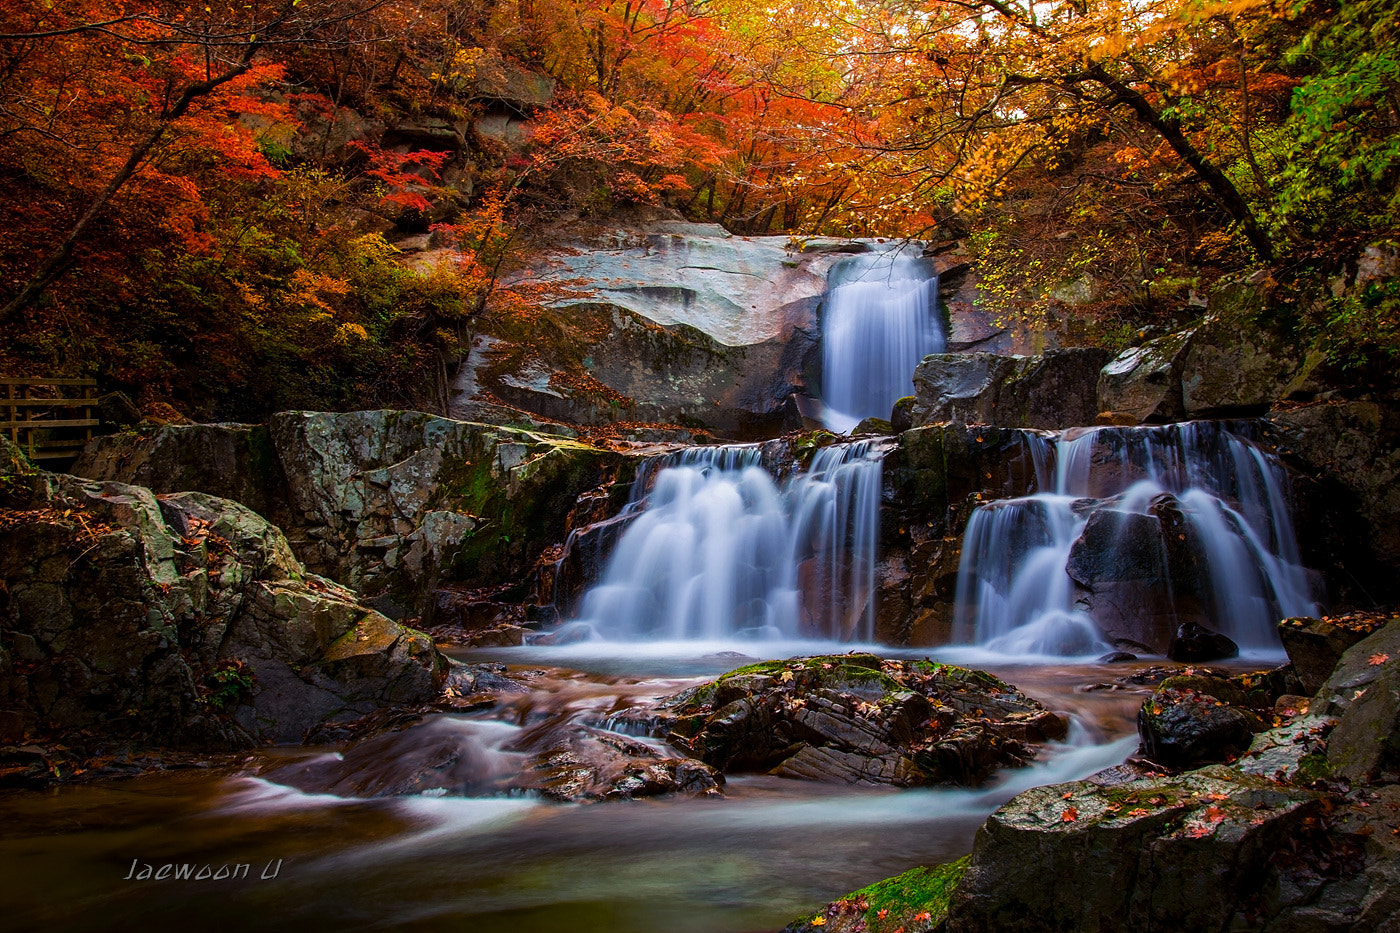 Photograph Autumn falls by Jaewoon U on 500px